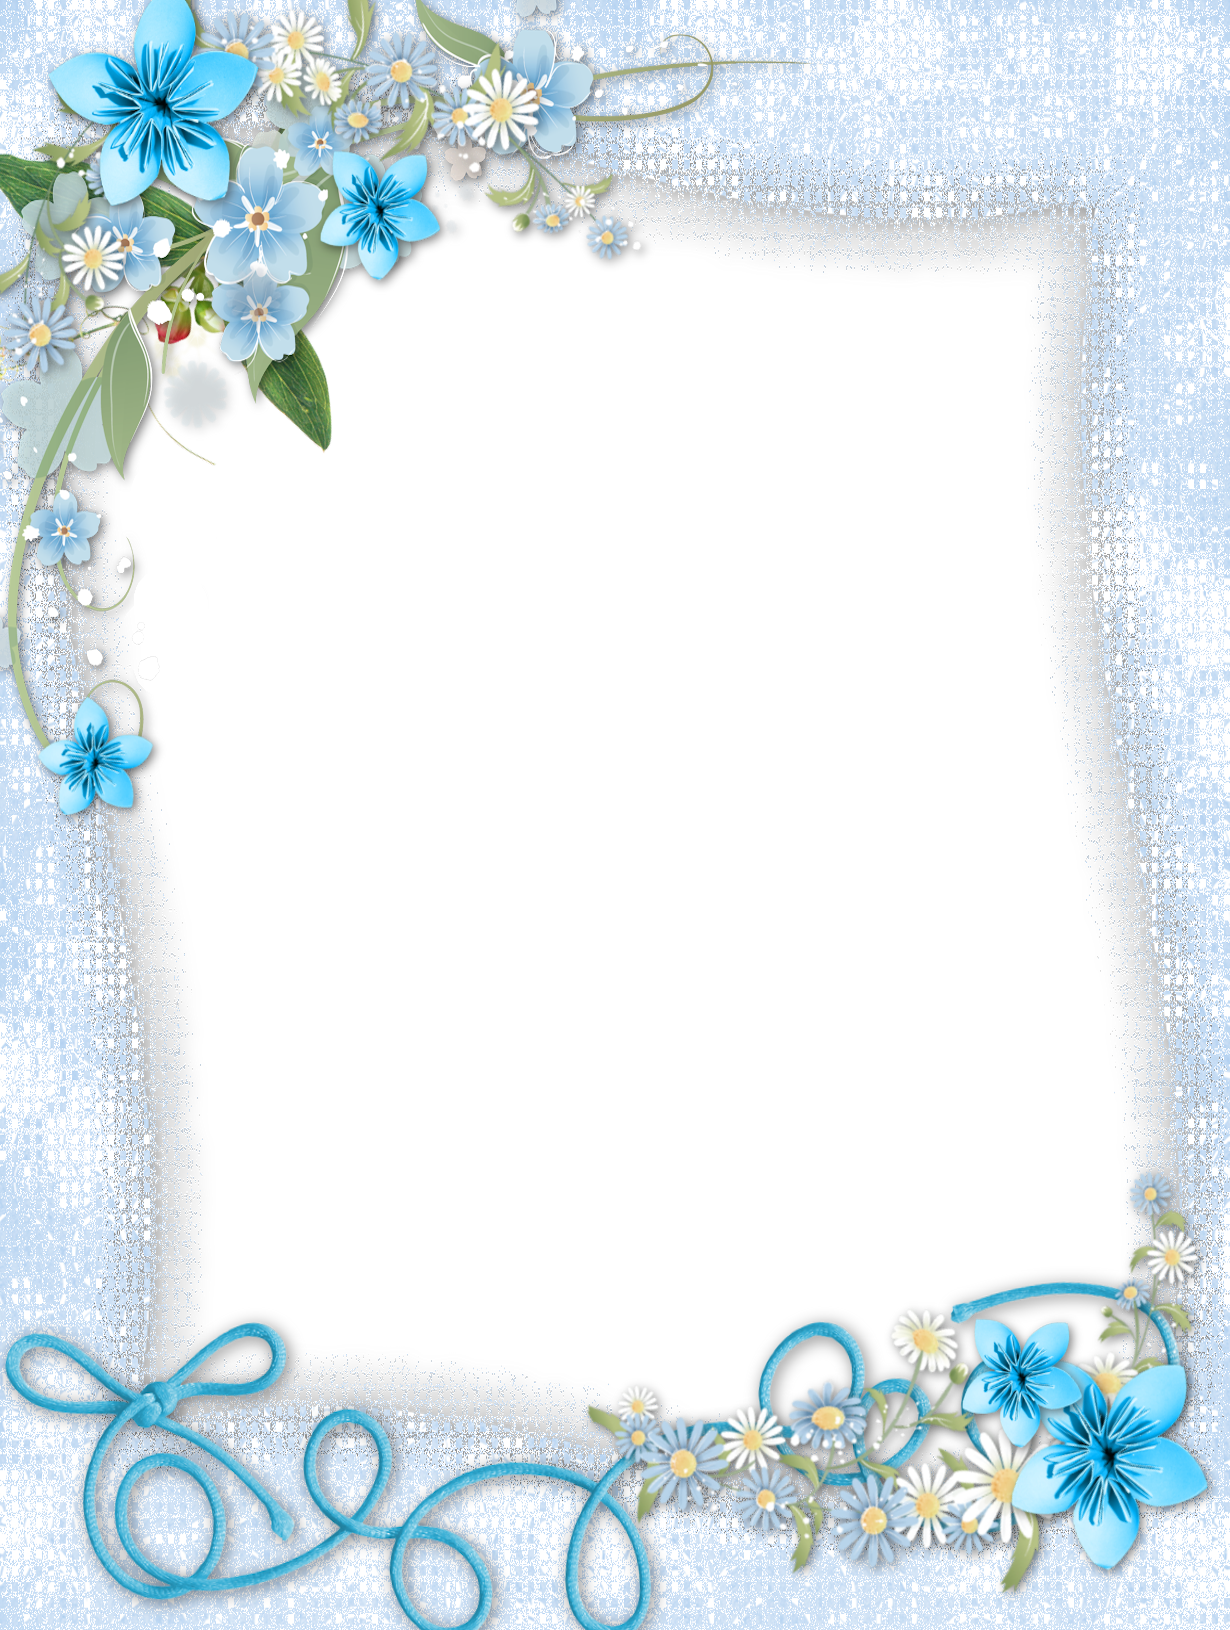 Transparent blue png frame with flowers frames pinterest transparent blue png frame with flowers jeuxipadfo Choice Image